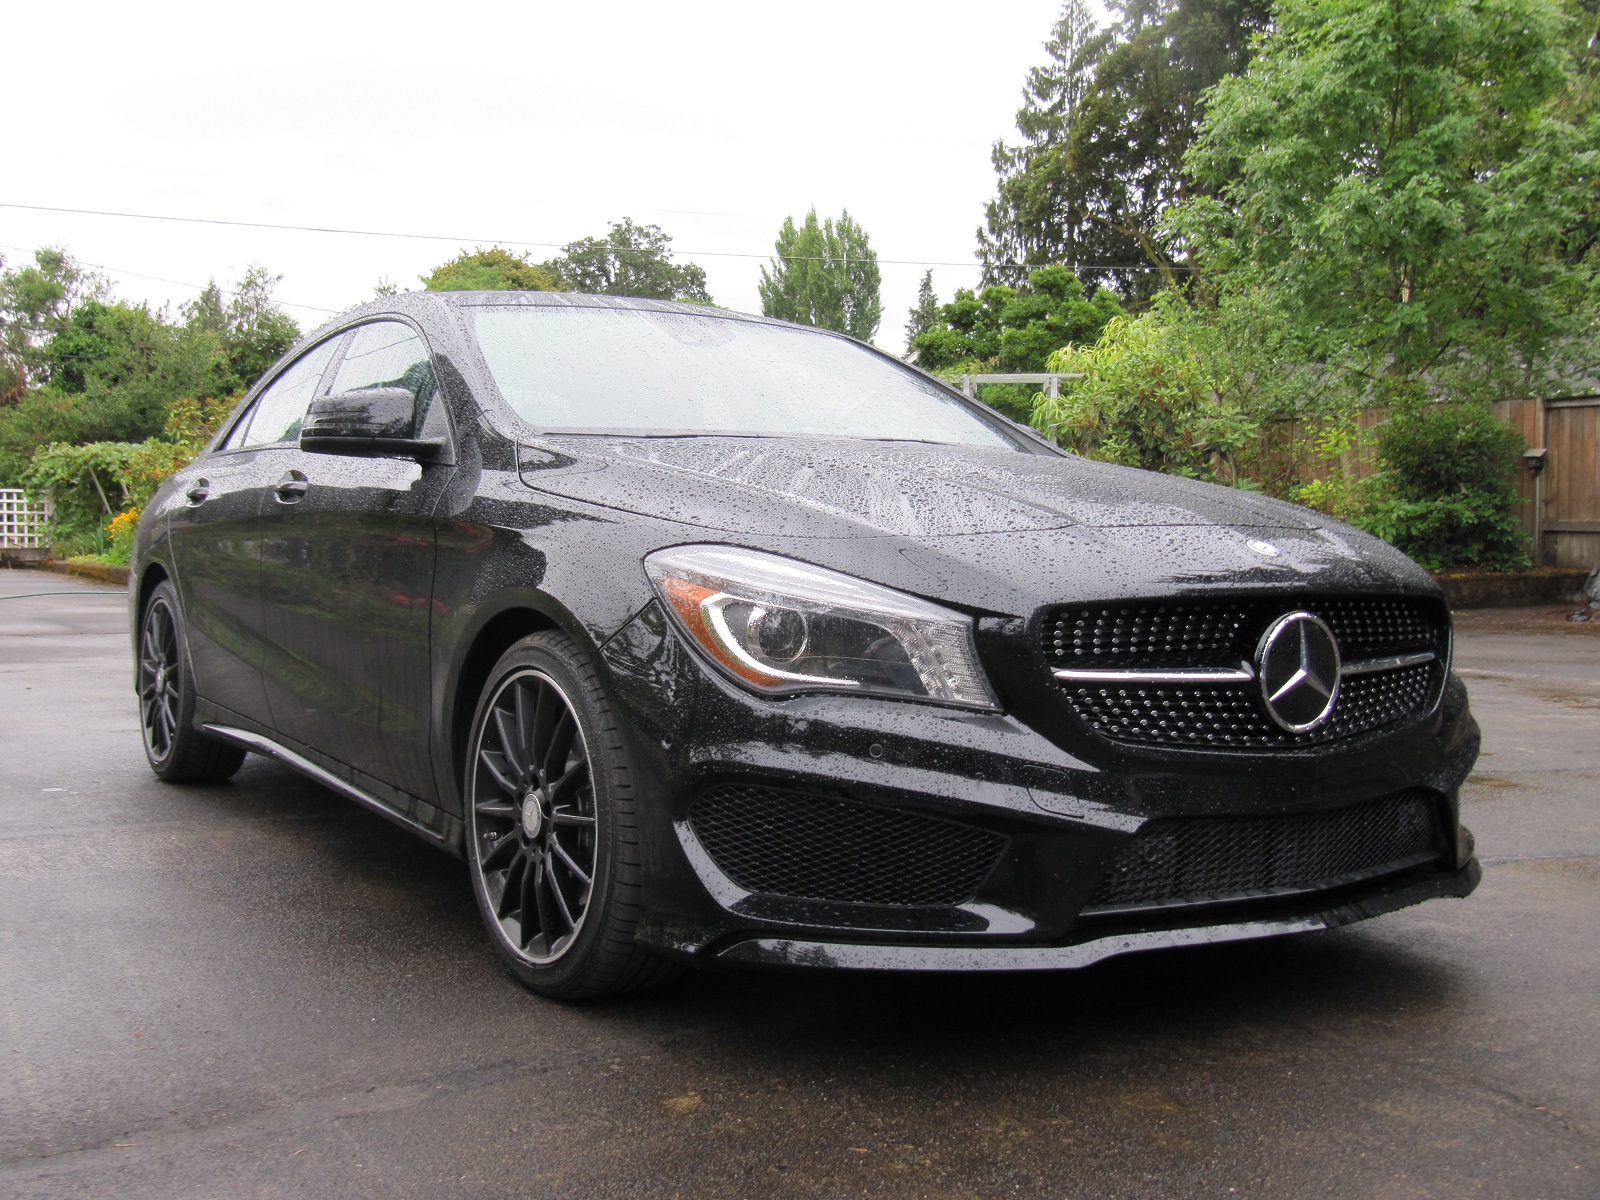 2014 mercedes benz cla 250 gas mileage review of compact luxury sedan. Black Bedroom Furniture Sets. Home Design Ideas